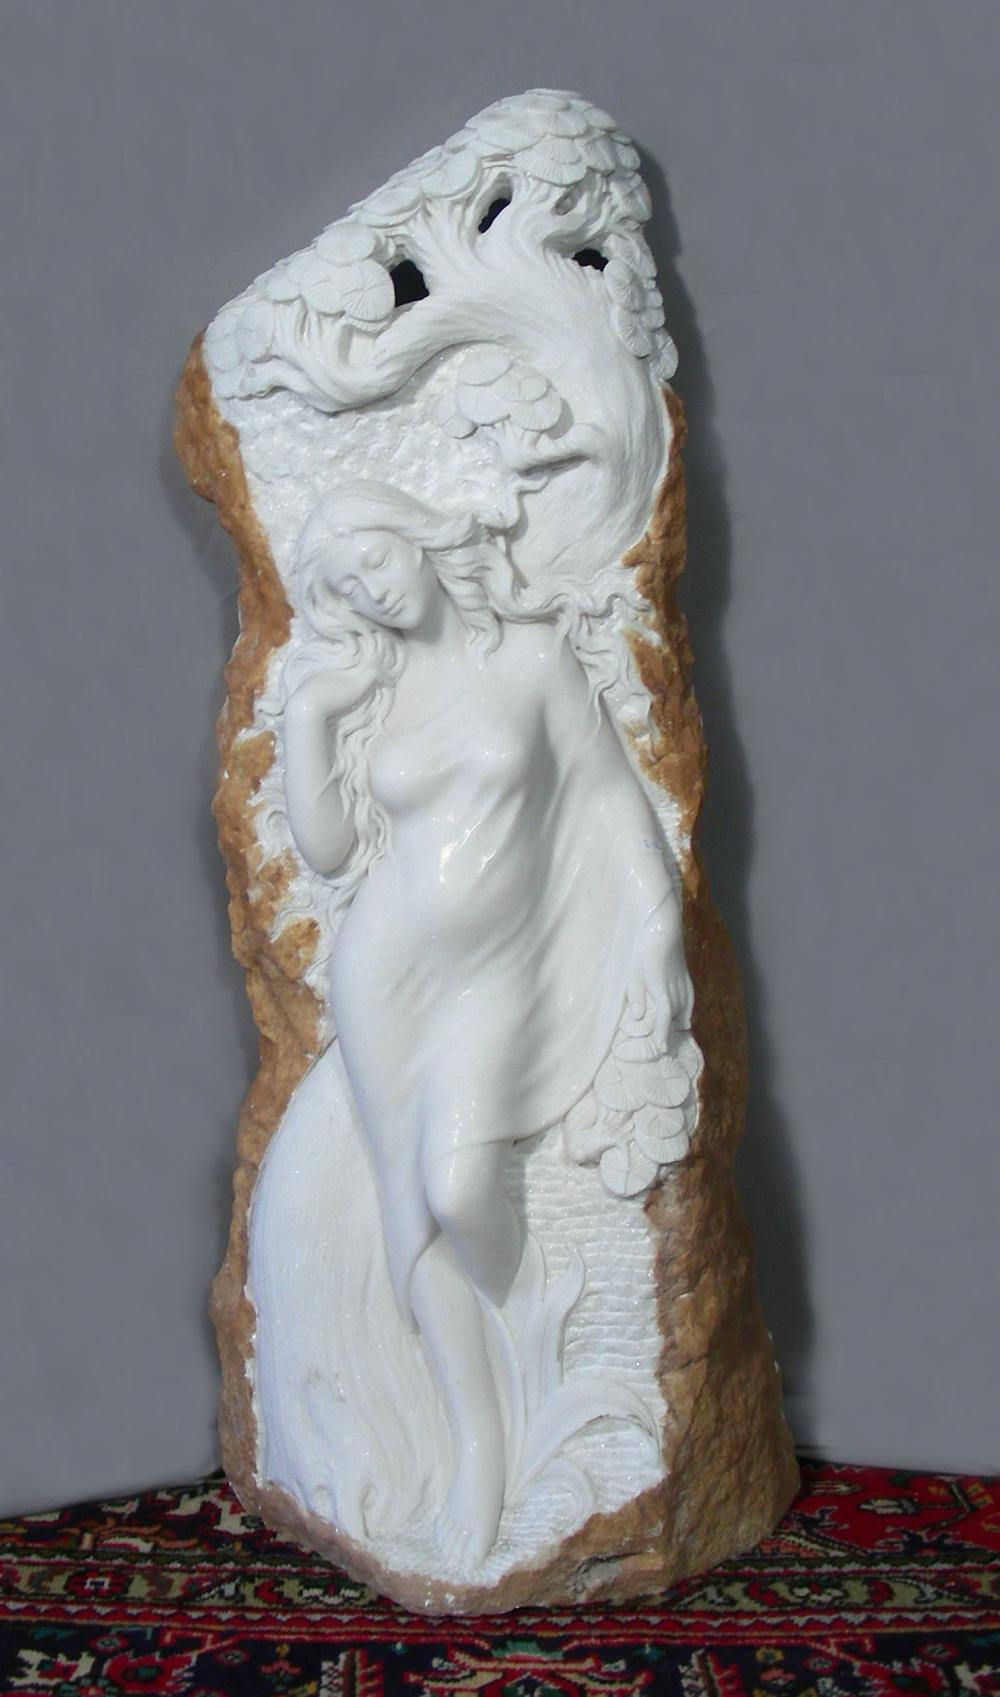 SPECTACULAR ITALIAN HAND CARVED ILLUMINATED MARBLE SCULPTURE OF WOMAN